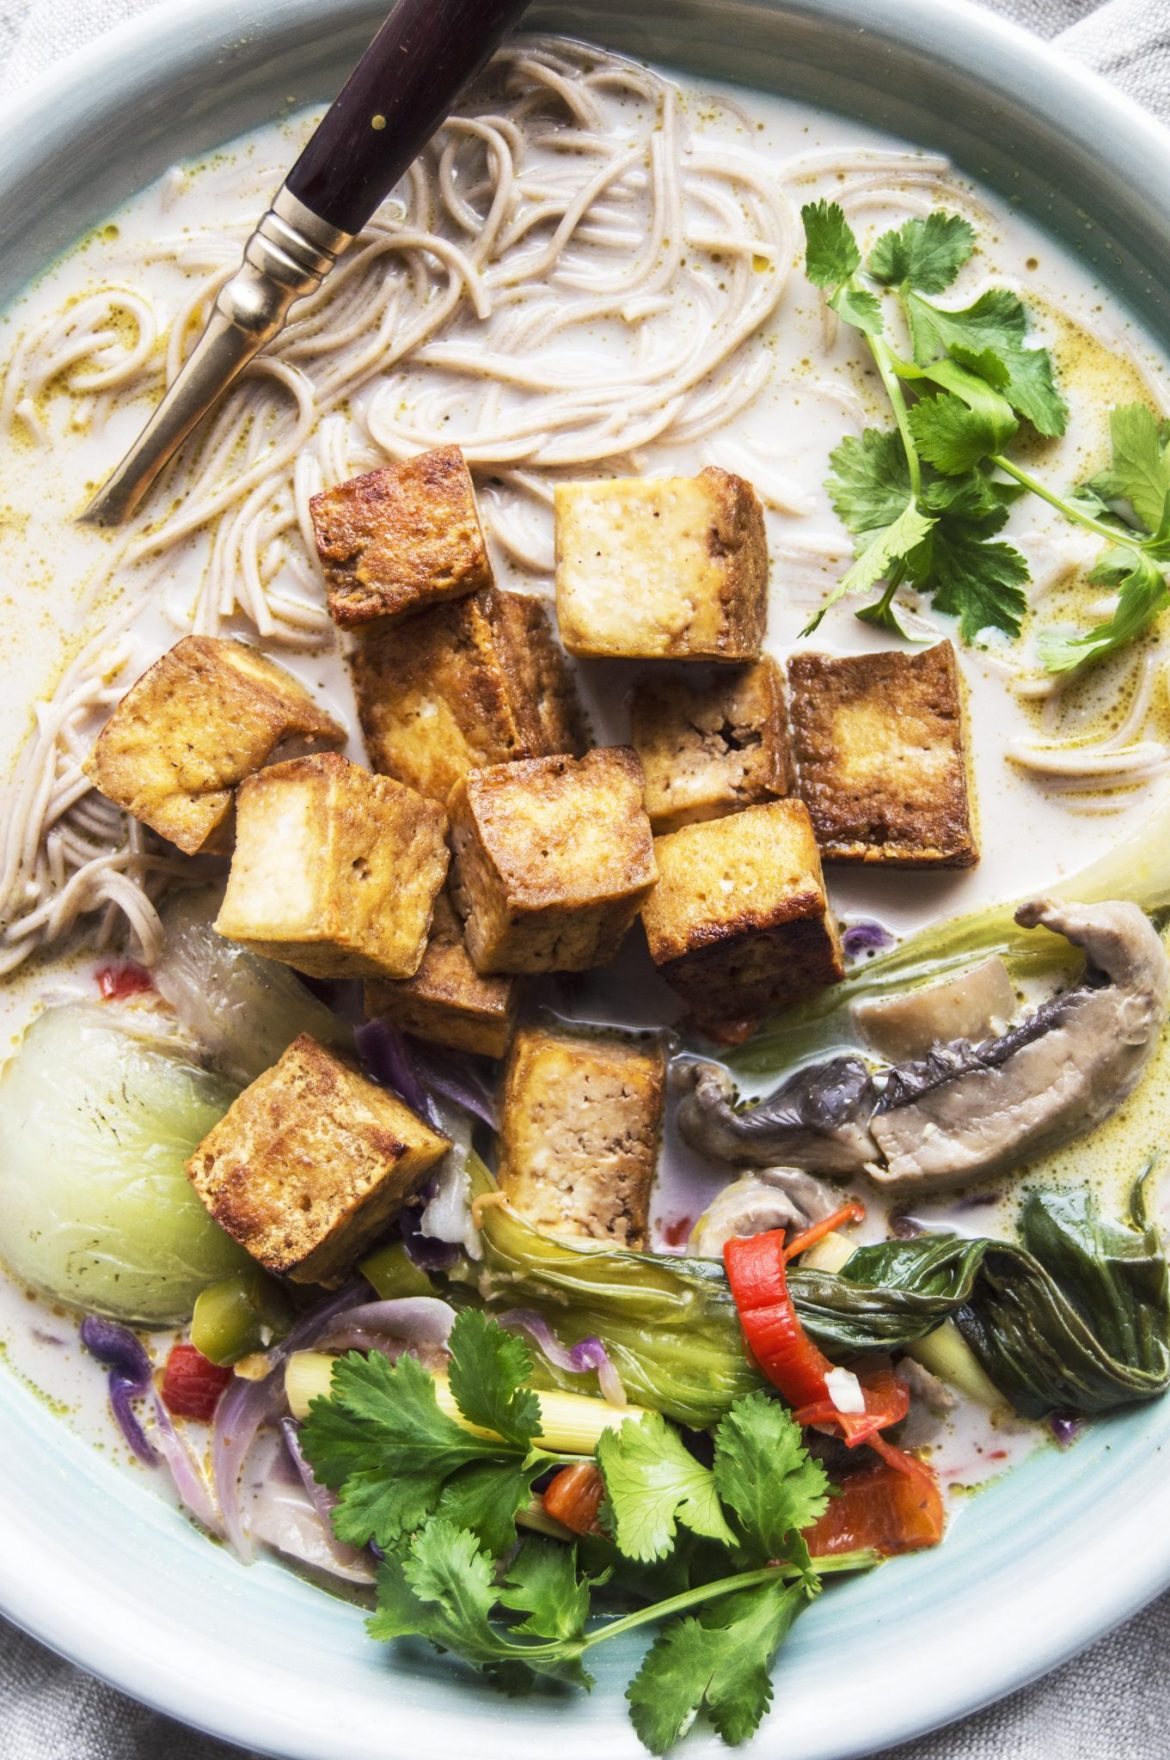 Spicy Lemongrass Infused Ginger Coconut Soup With Crispy Tofu